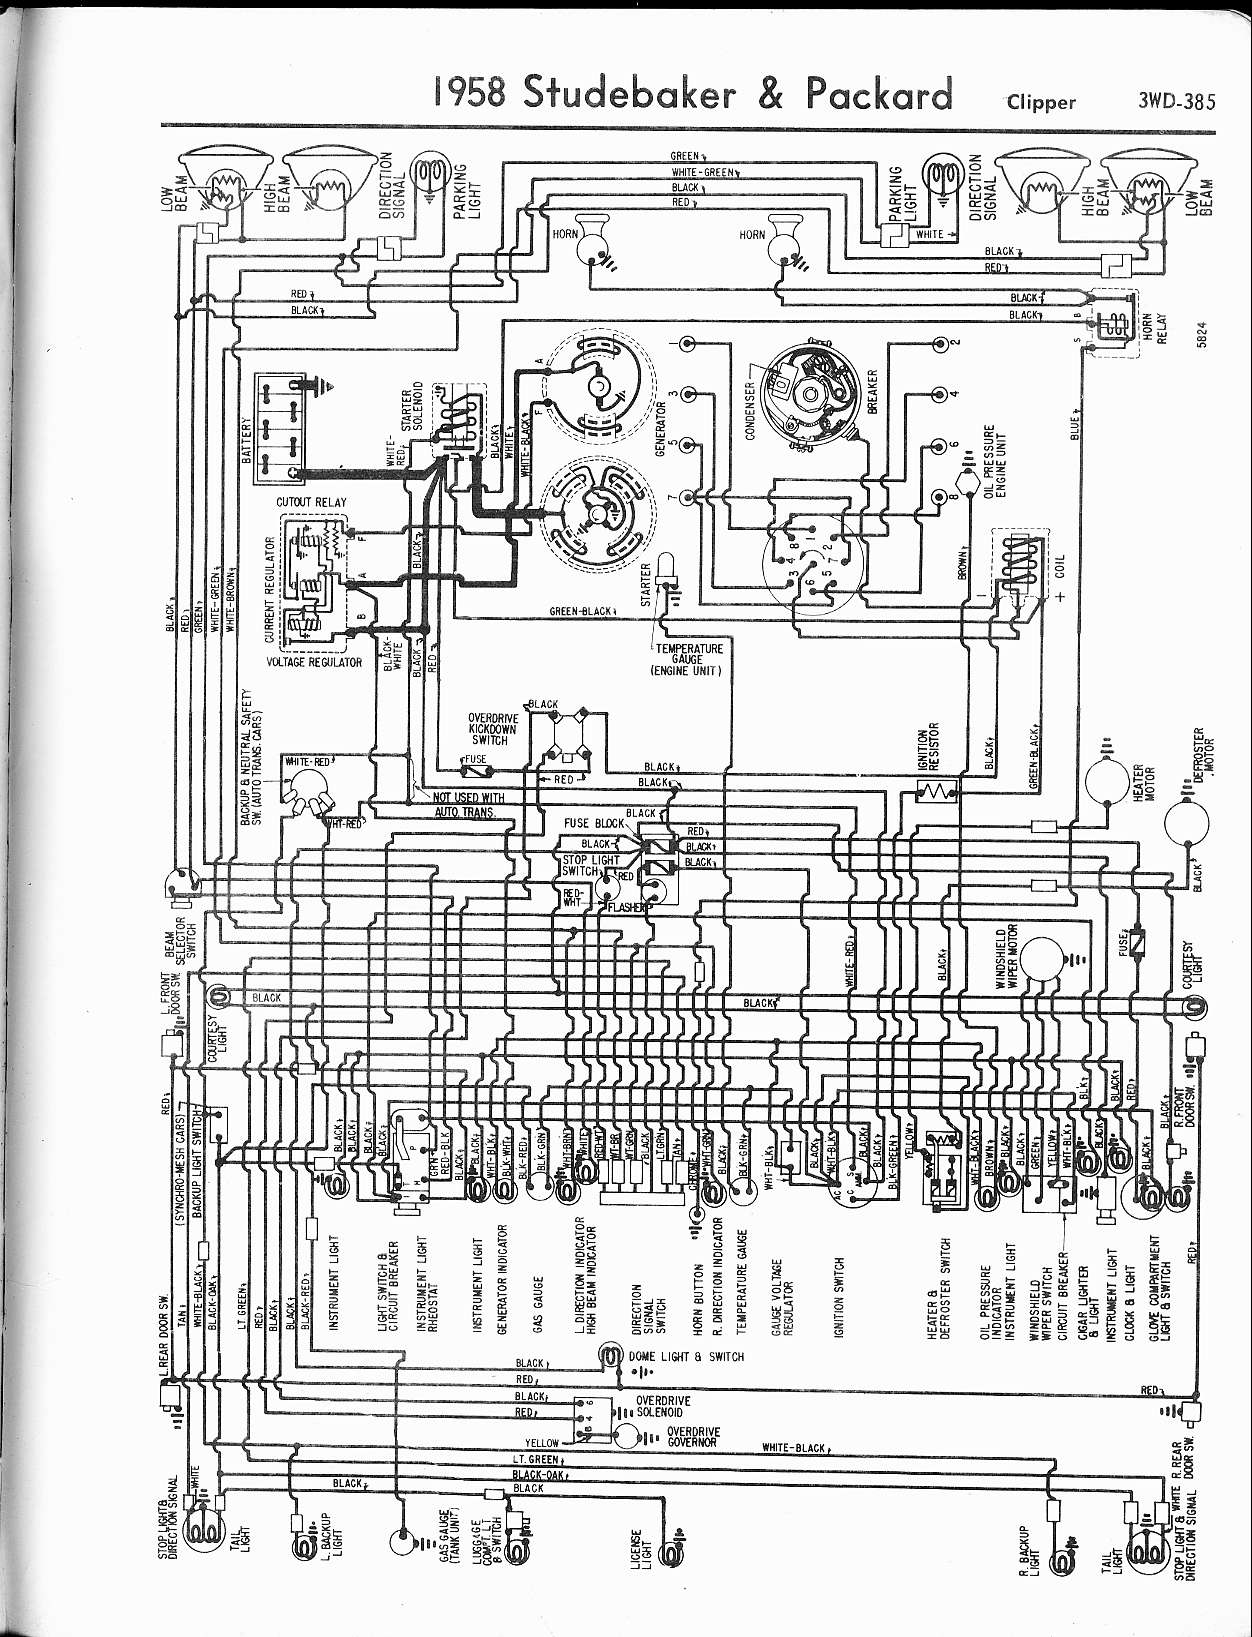 DIAGRAM] 1962 Studebaker Wiring Diagrams FULL Version HD Quality Wiring  Diagrams - KEEPITSIMPLESCHEMATIC.ICBARISARDO.ITkeepitsimpleschematic.icbarisardo.it